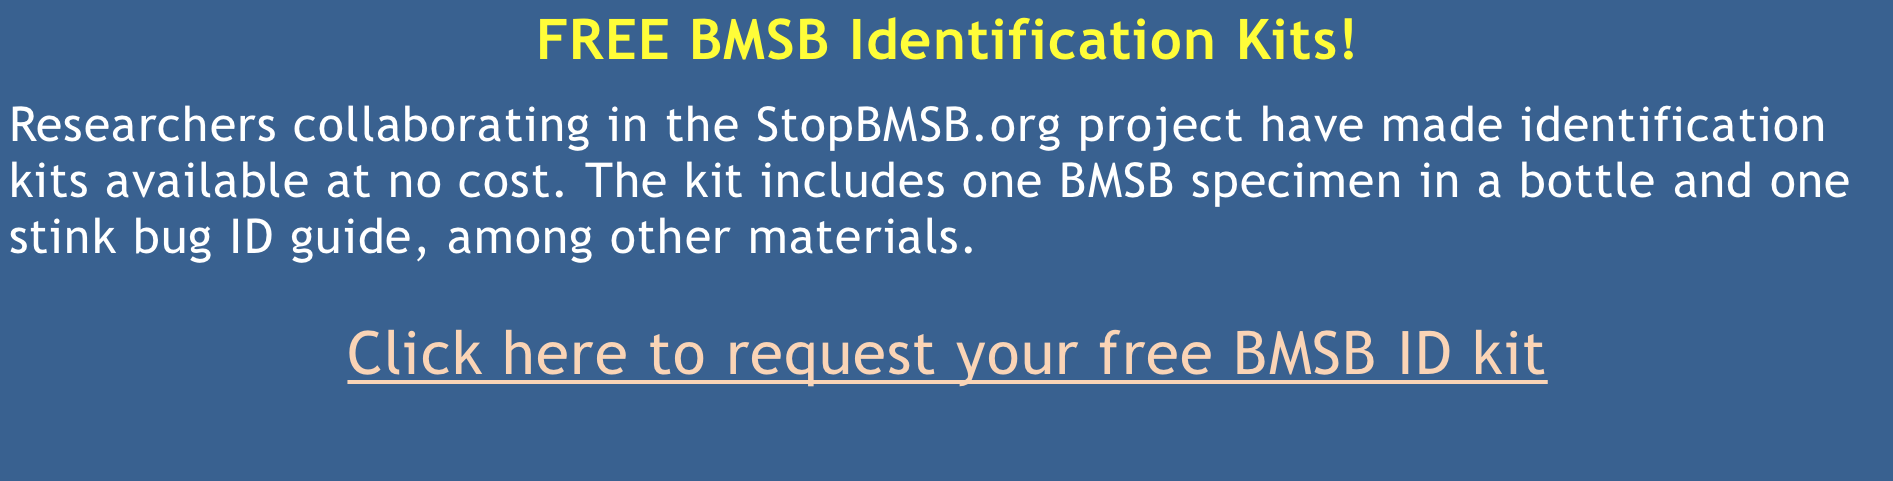 BMSB Identification Kit